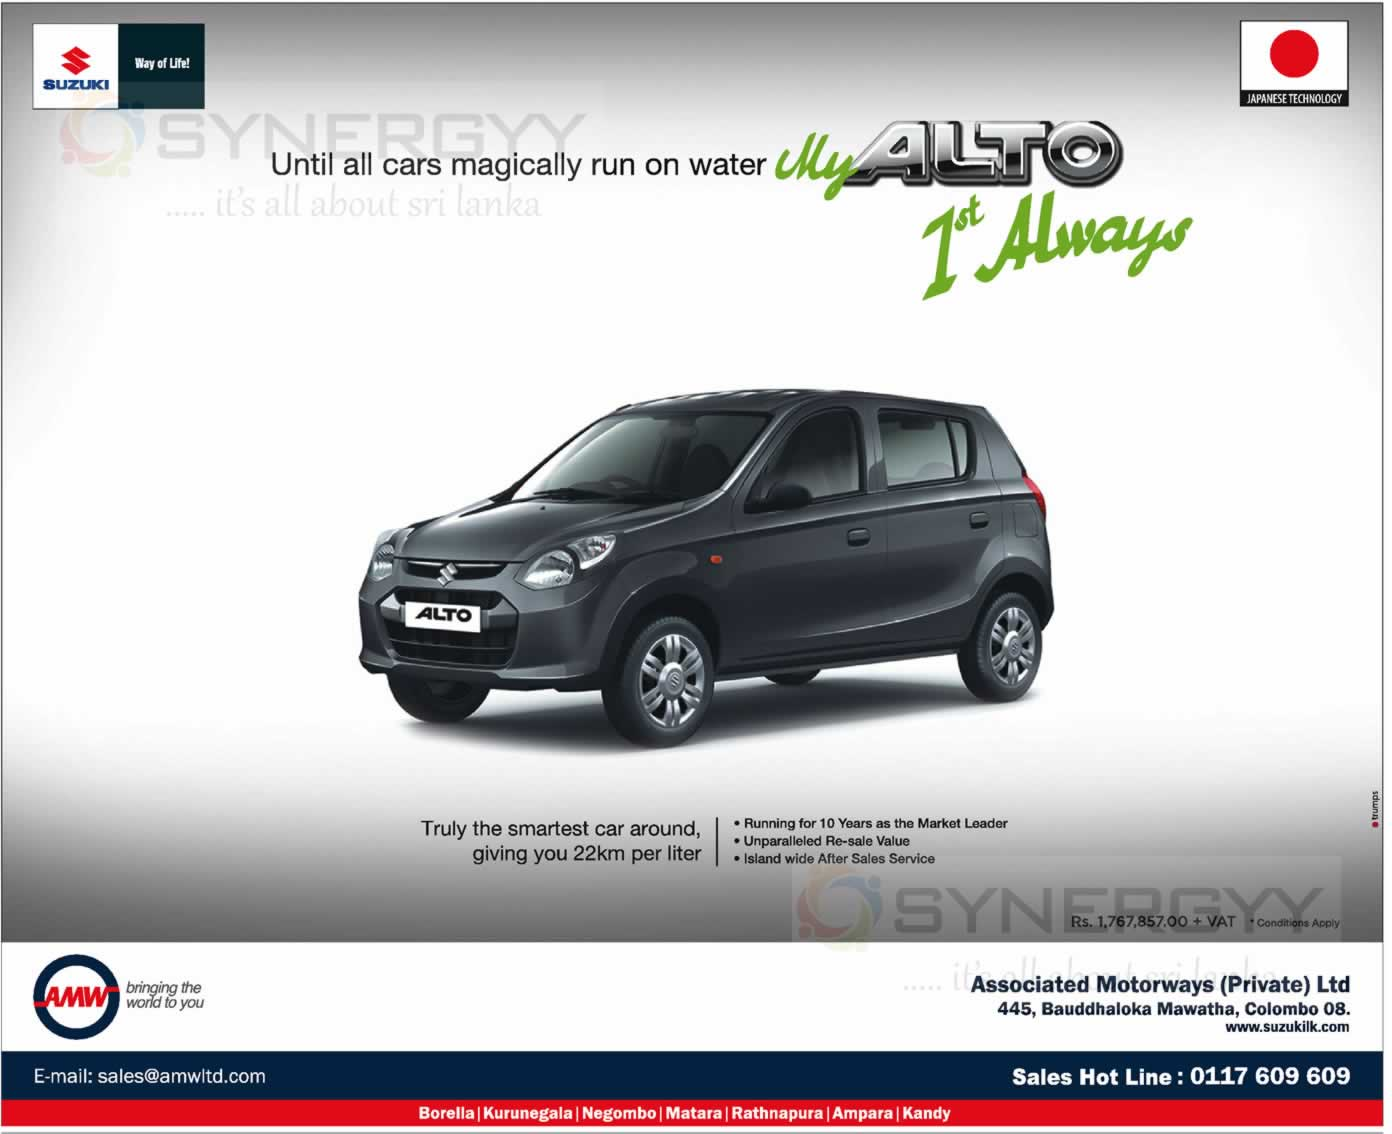 Suzuki Japan Vehicle Prices In Sri Lanka Synergyy